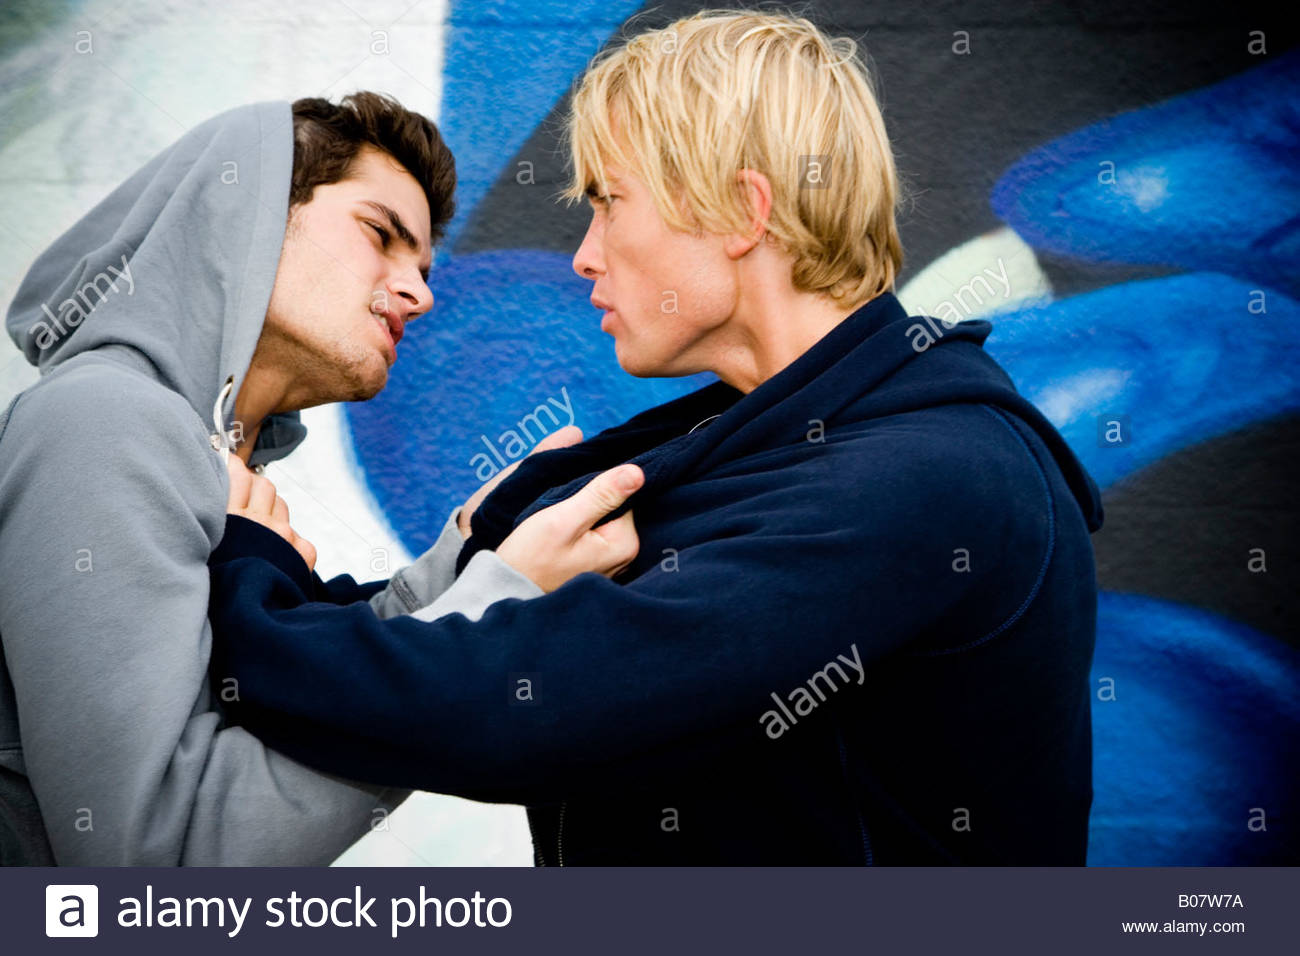 Two men fighting in front of a graffiti covered wall - Stock Image